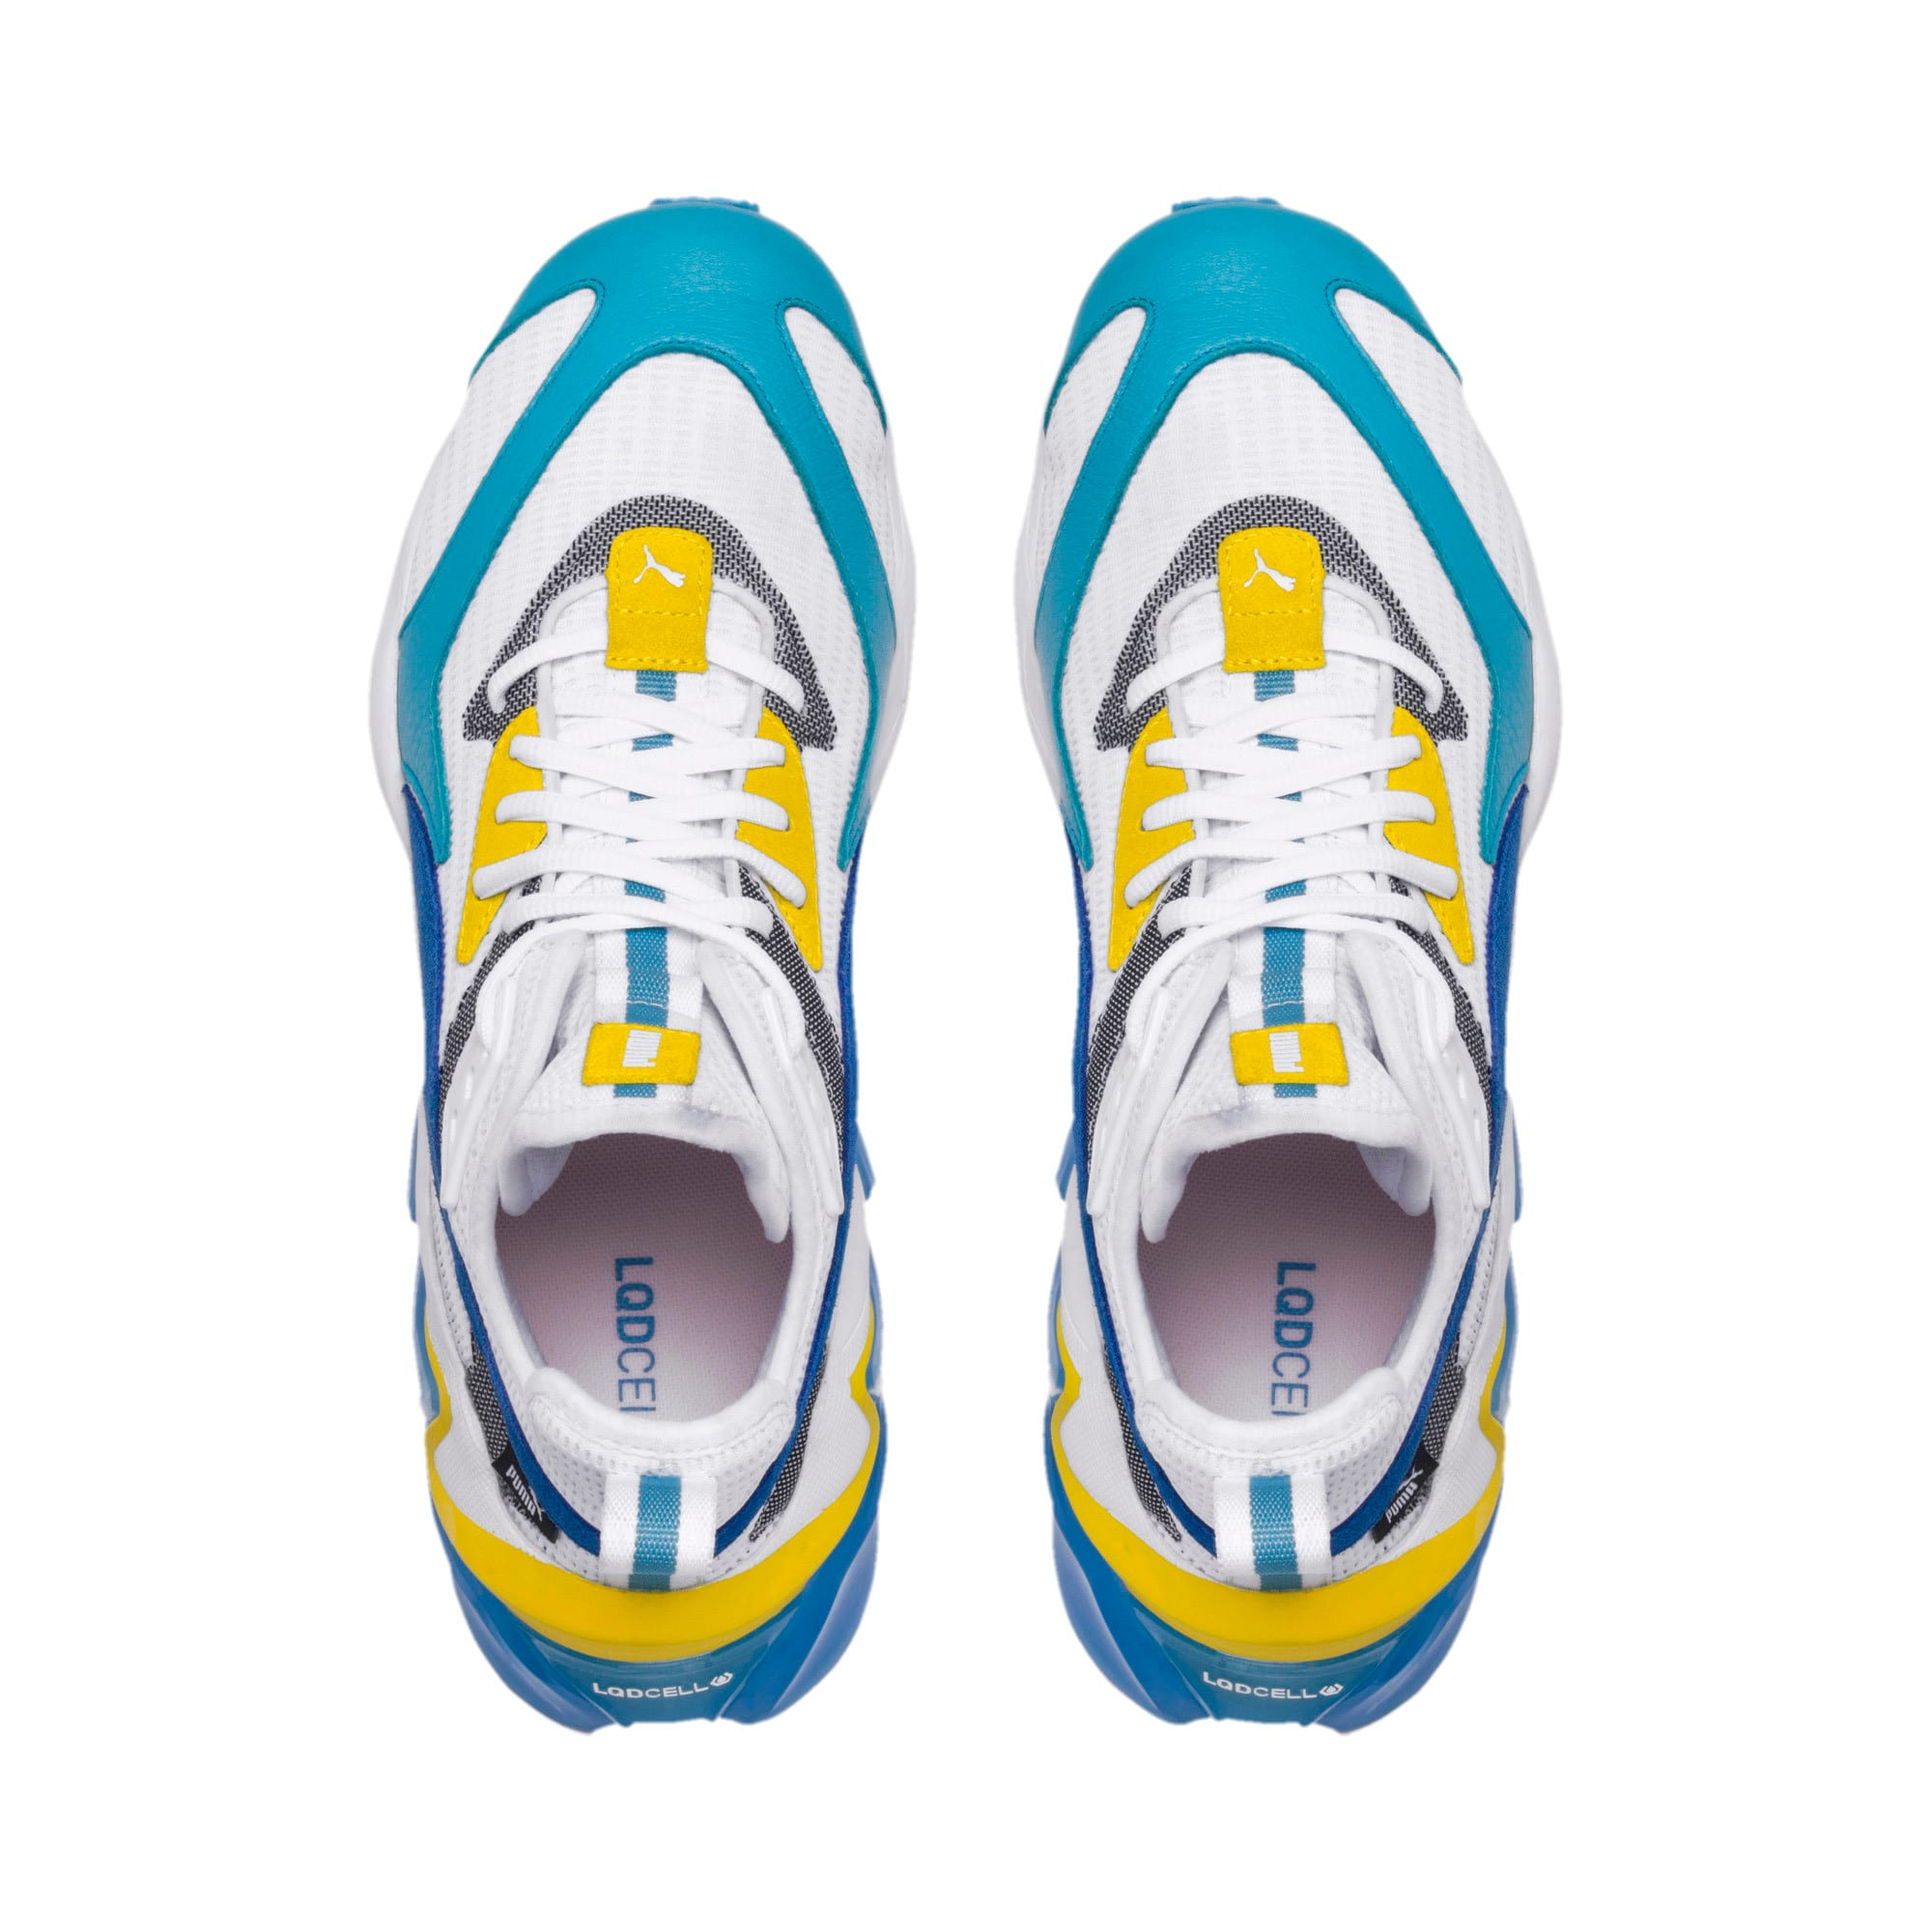 Thumbnail 6 of LQDCELL Origin Men's Training Shoes, Puma White-B Blue-Blz Yellow, medium